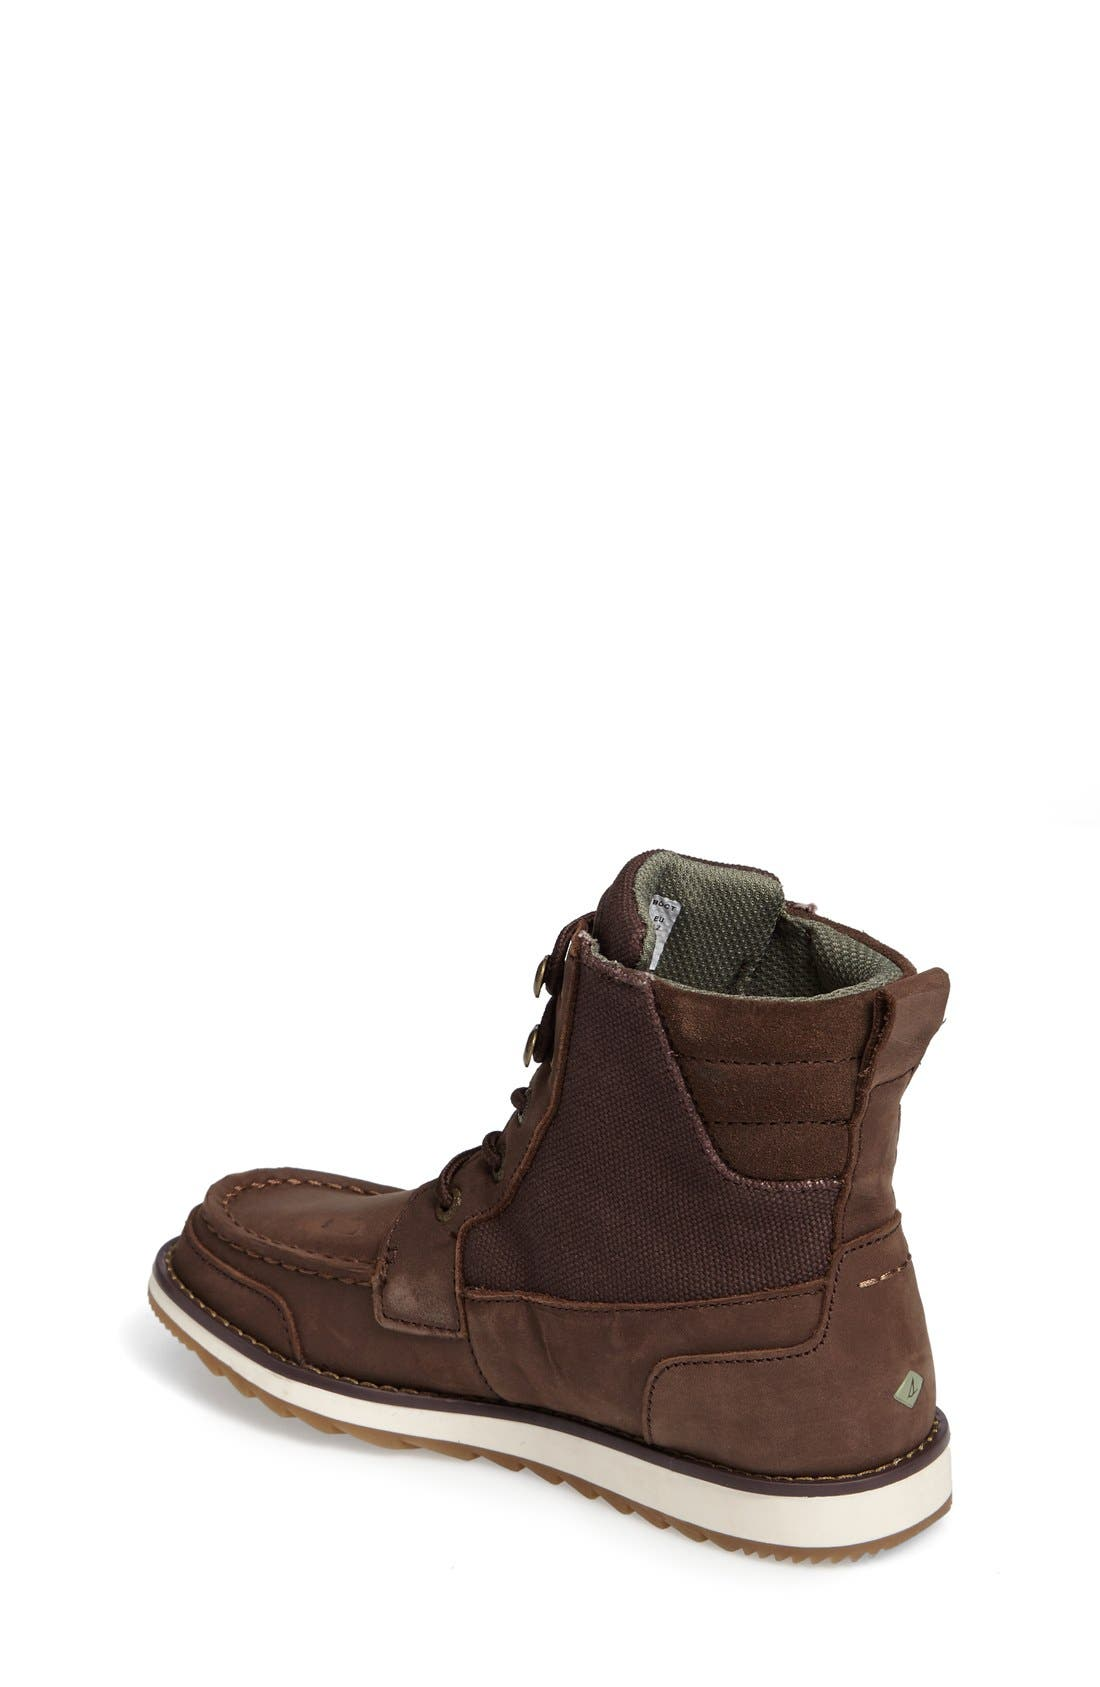 Sperry Dockyard Boot,                             Alternate thumbnail 2, color,                             Brown Faux Leather